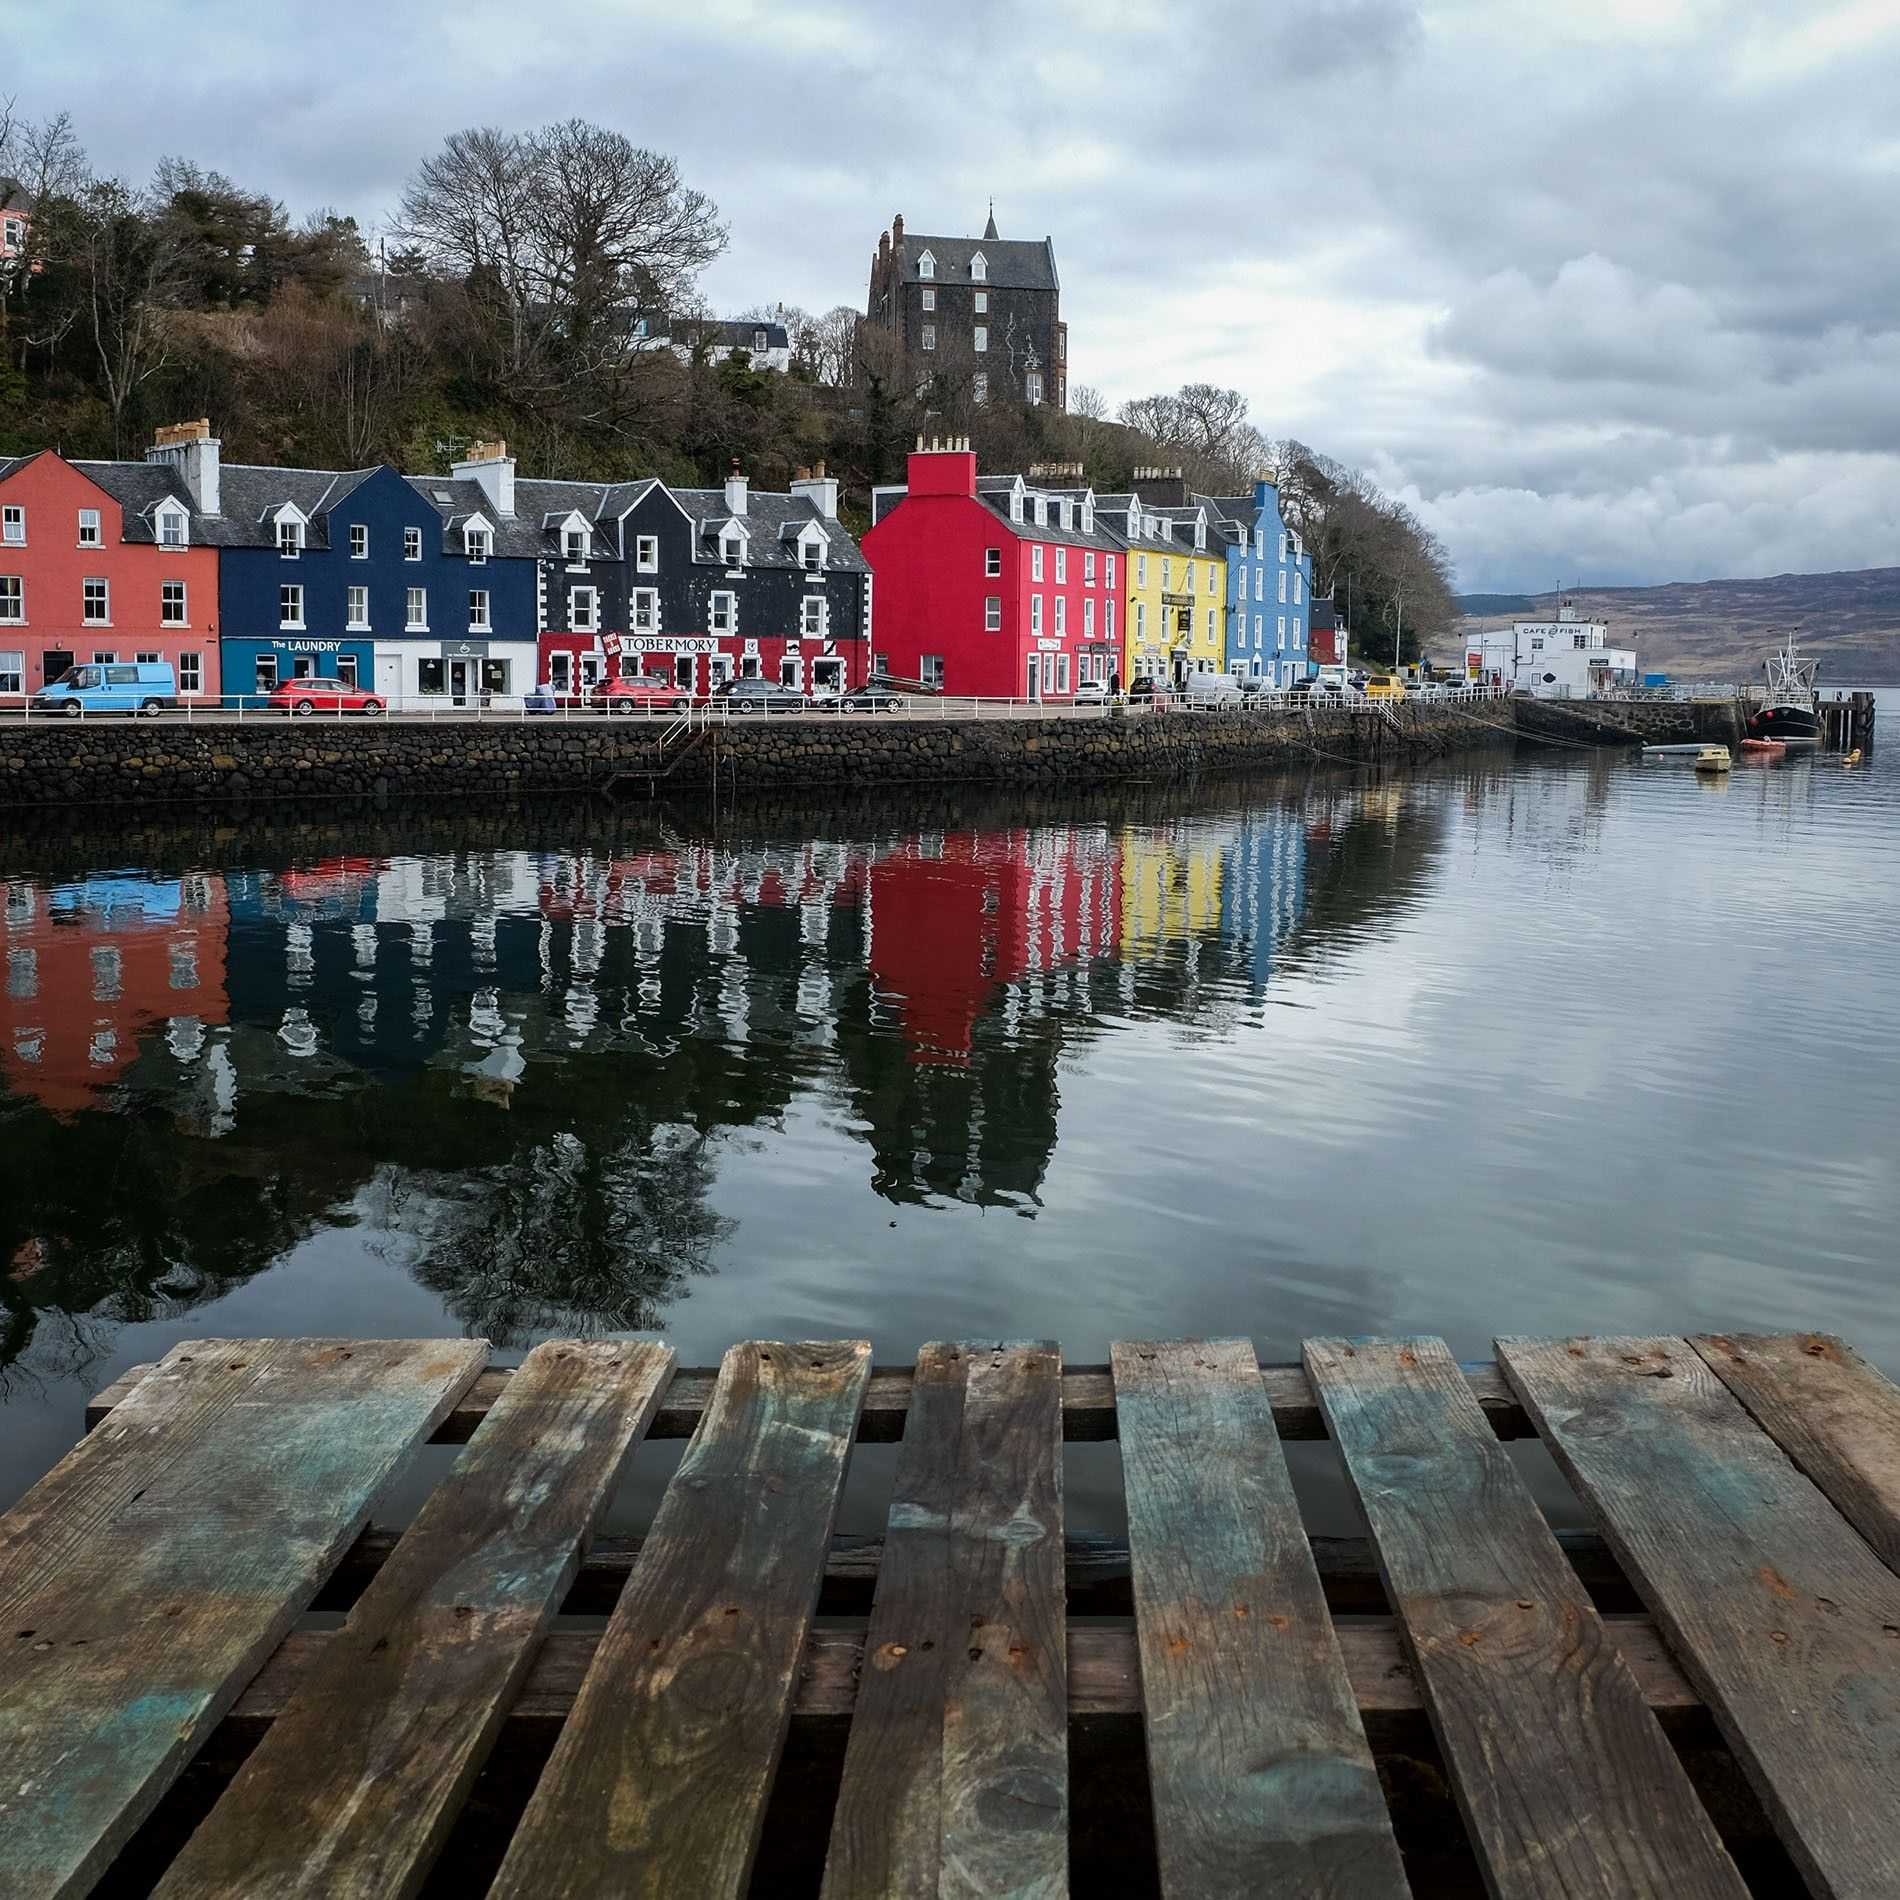 Bespoke Scottish travel company, Away From The Ordinary specialises in designing trips based on your interests, ...